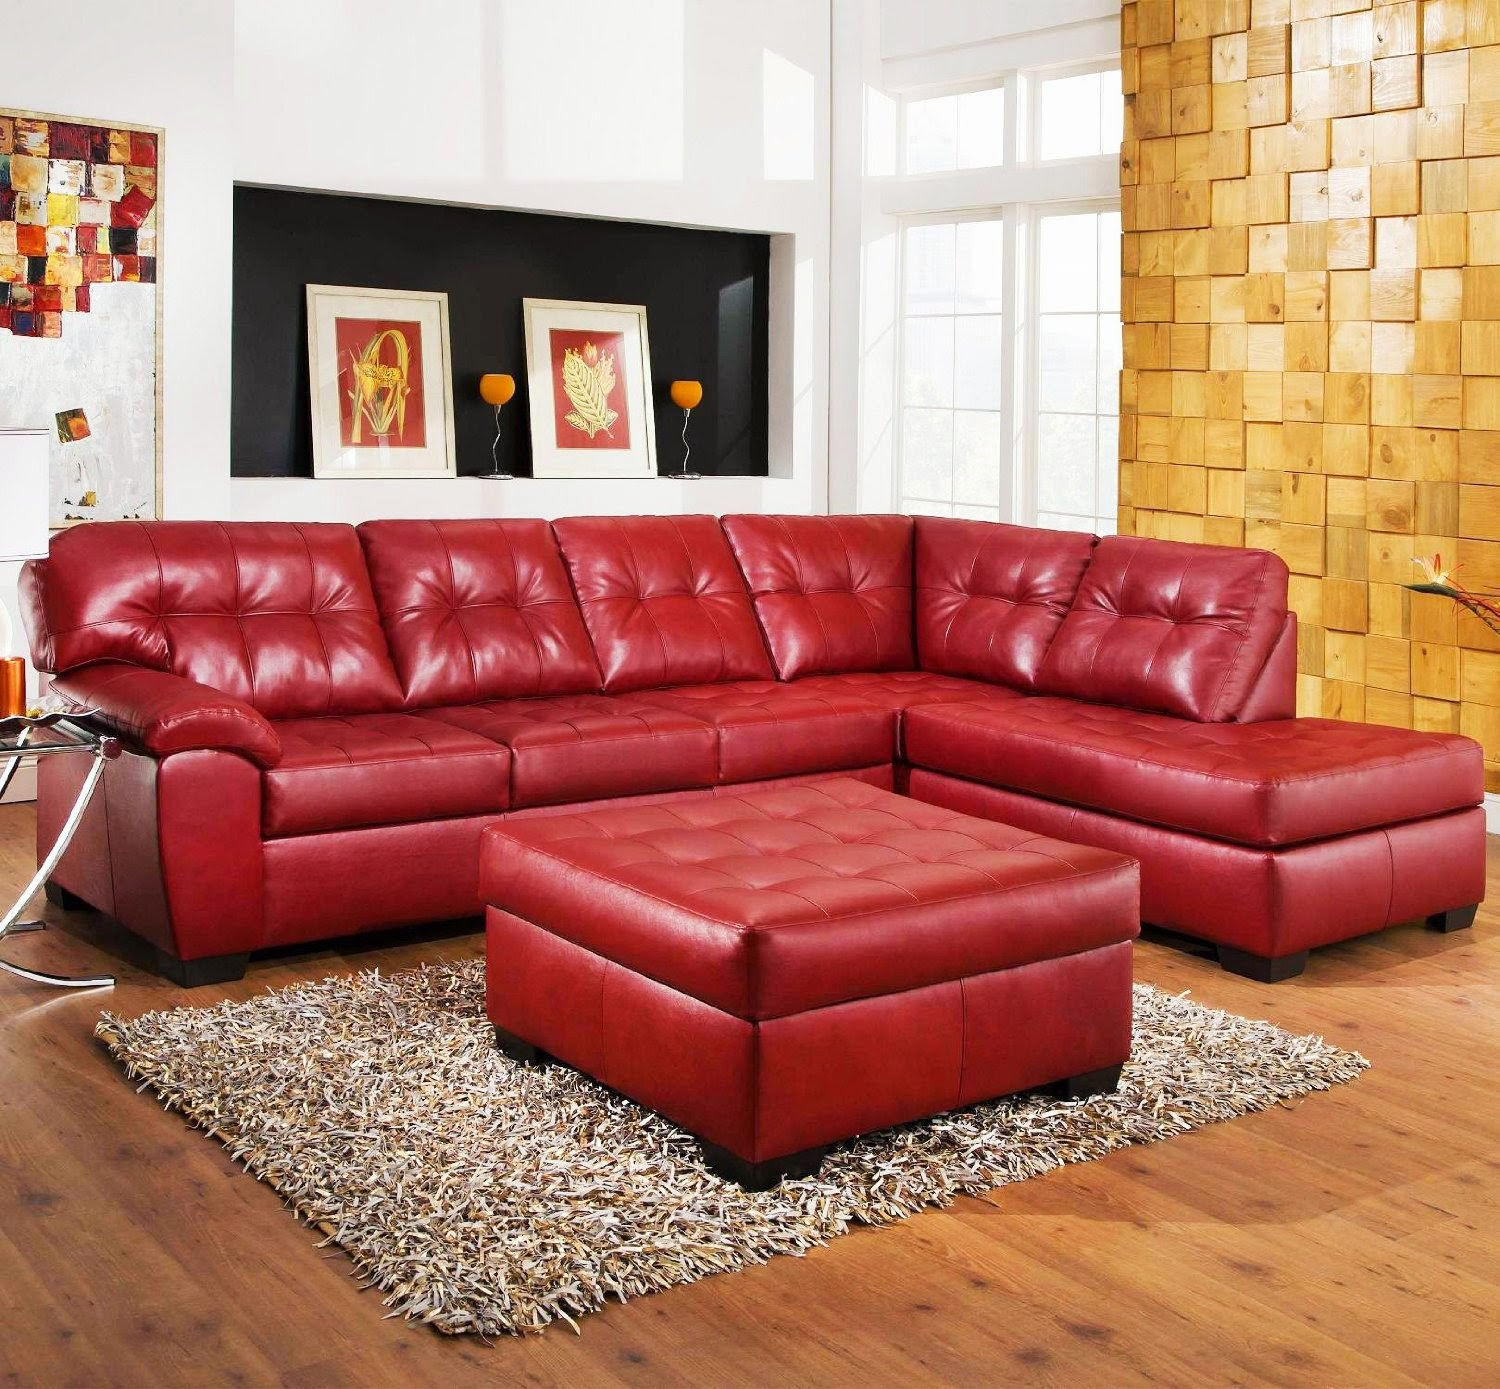 red couch: red leather sectional couch | Home Gallery